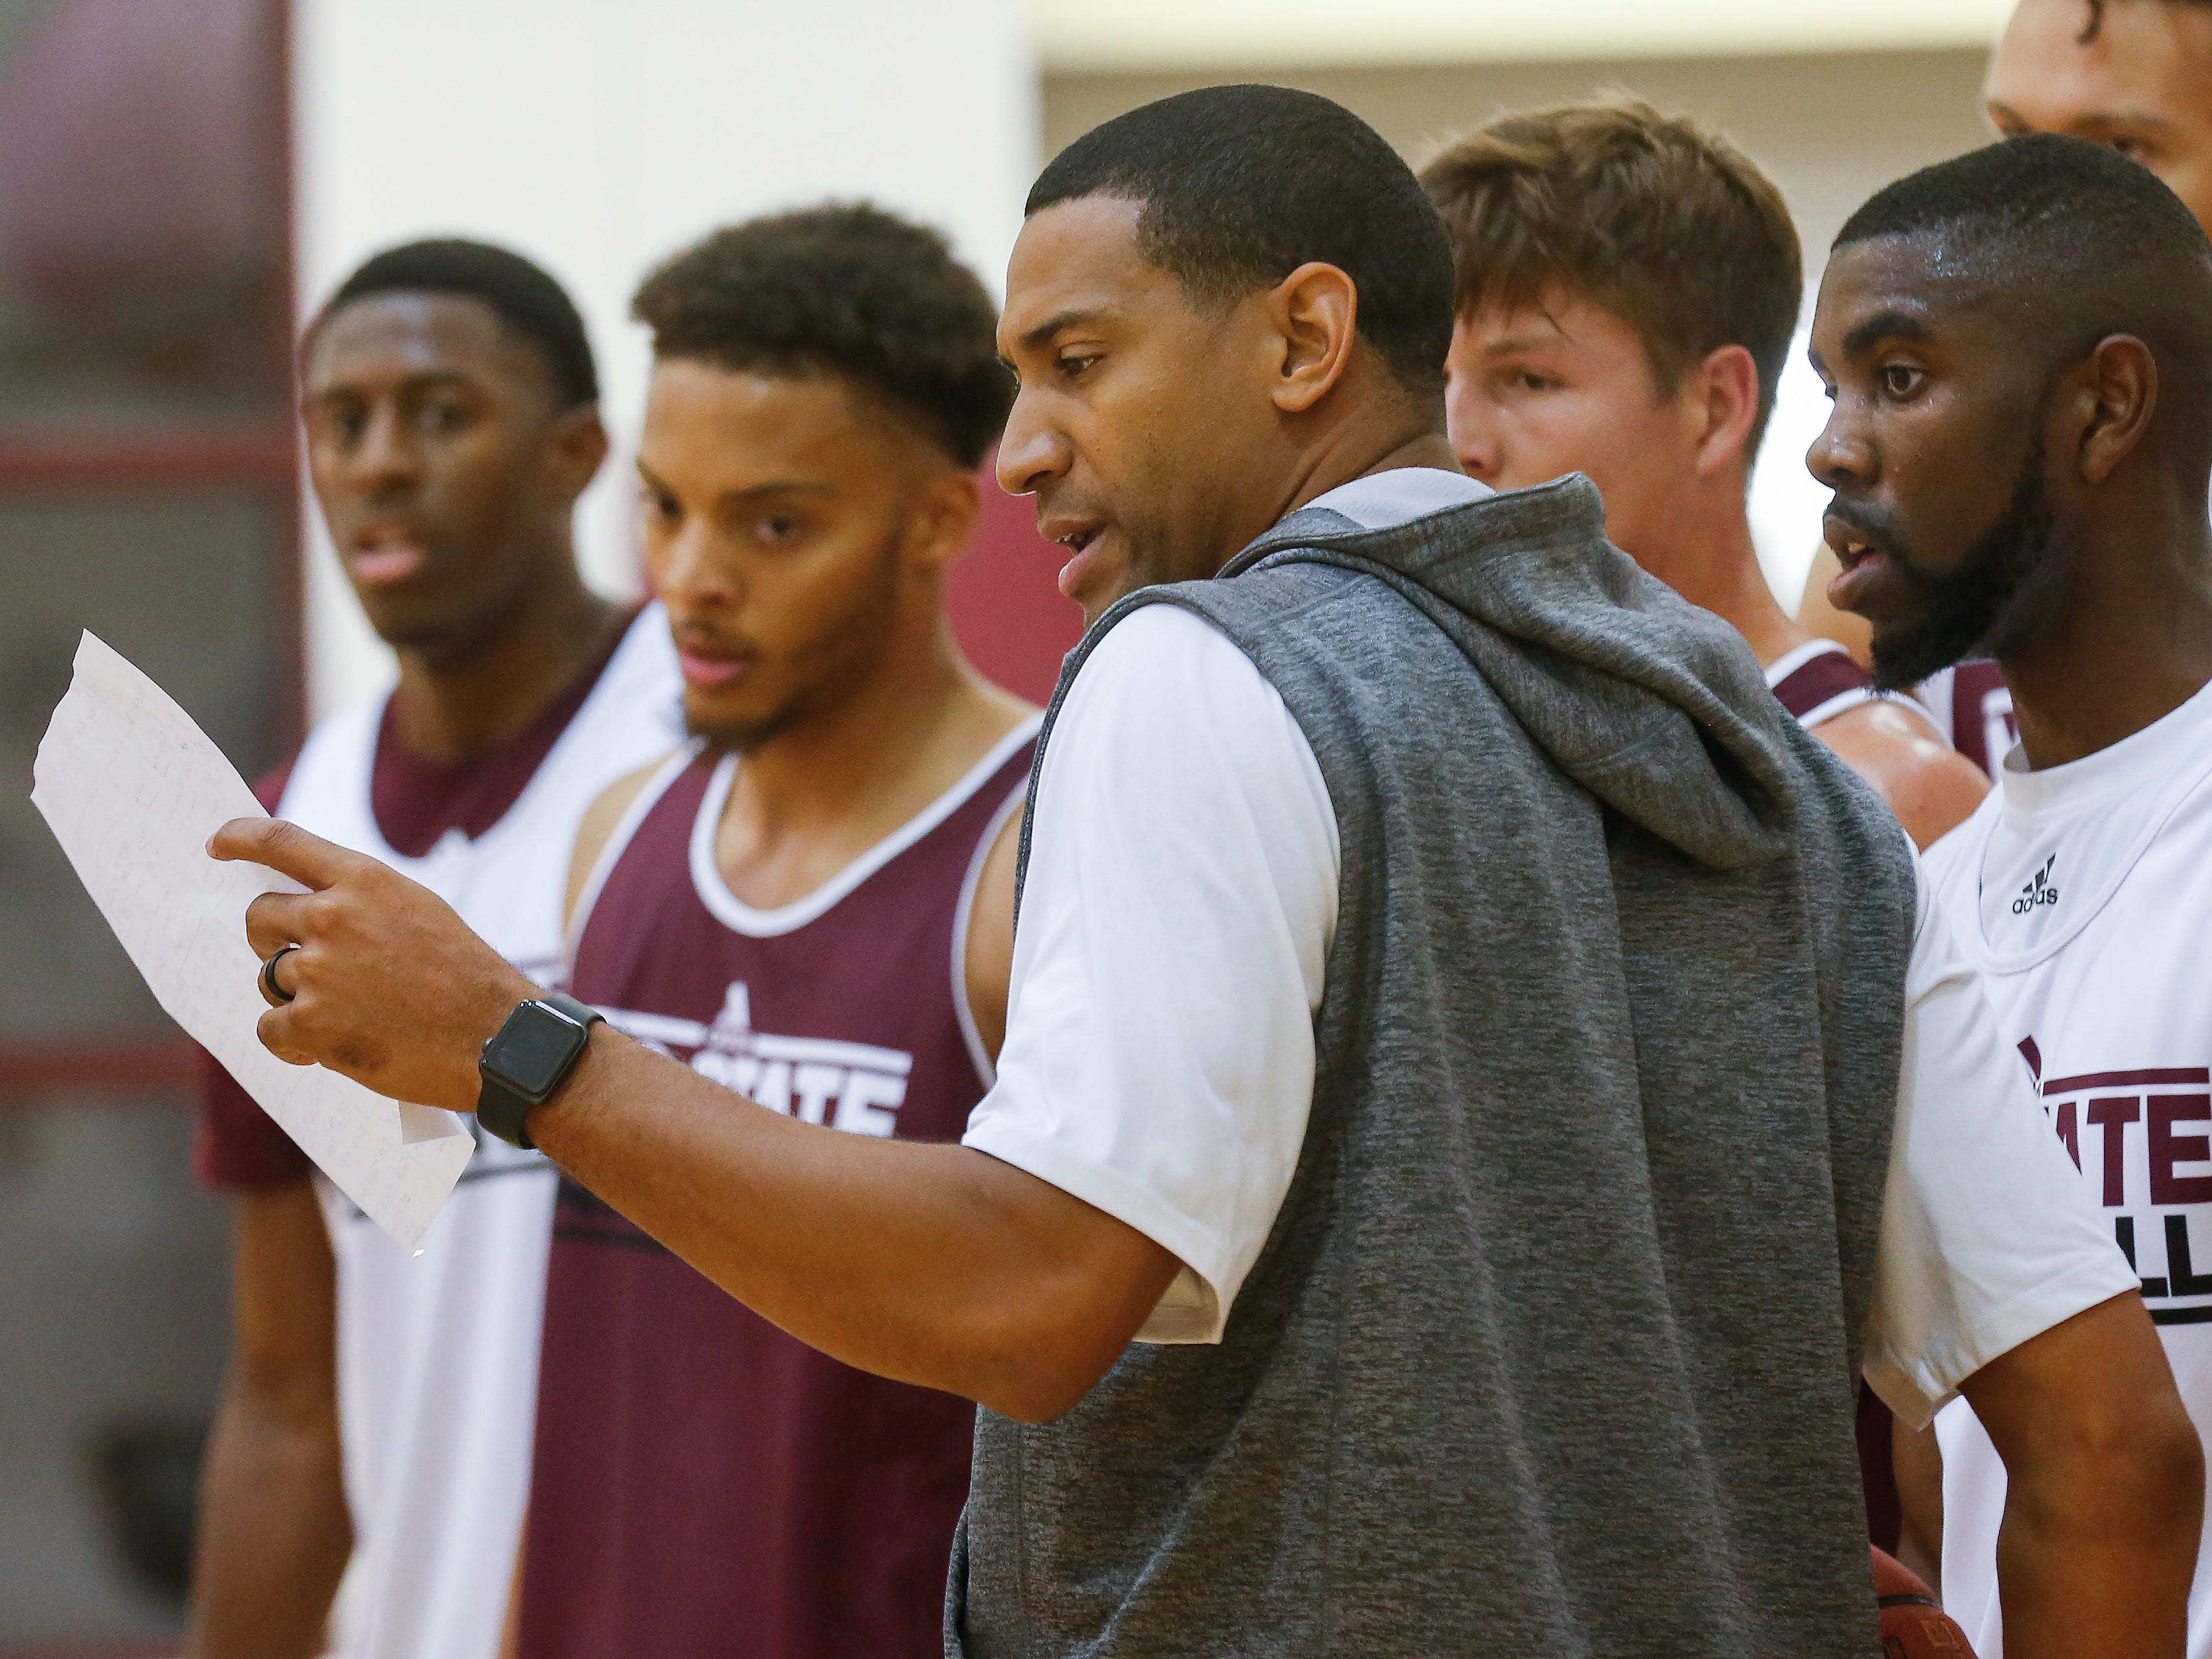 Head coach Dana Ford breaks his players up into groups during the Missouri State University men's basketball team's first practice of the season on Tuesday, Sept. 25, 2018.